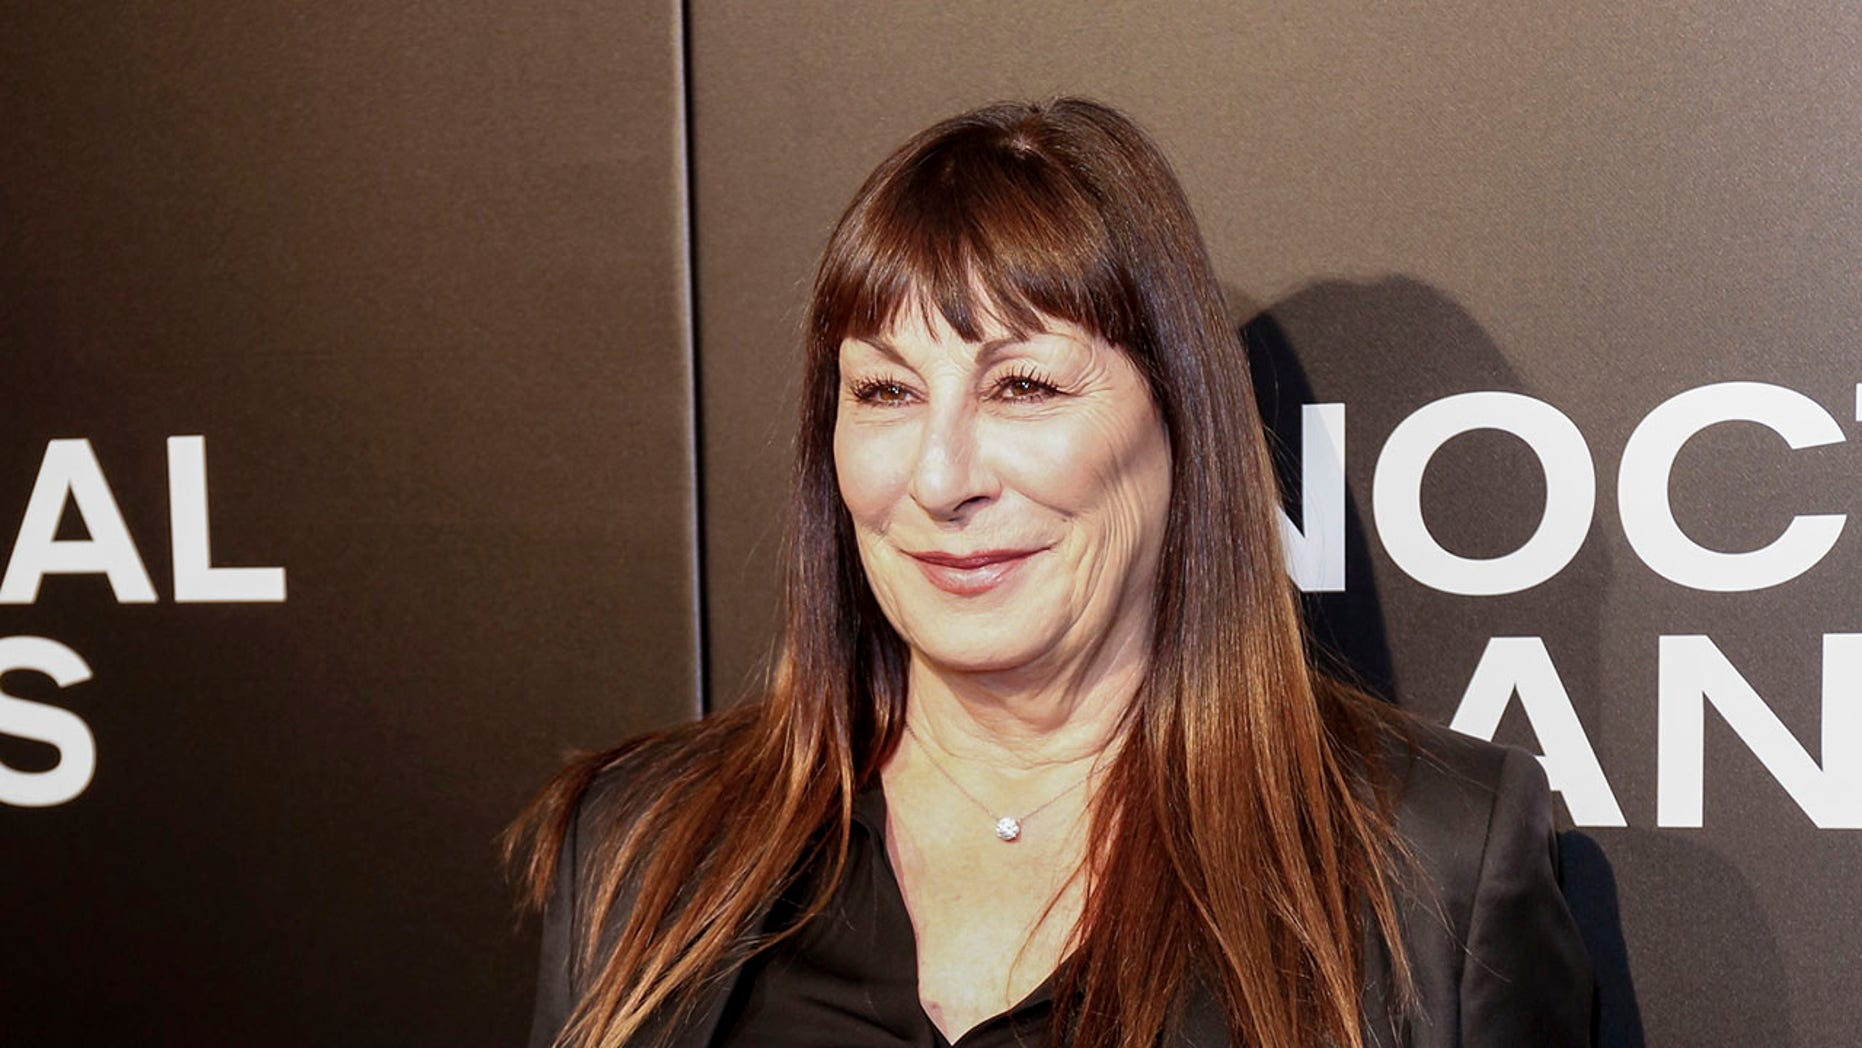 Anjelica Huston skewered Bill Murray, Diane Keaton and even Oprah in a new interview. (Photo by Willy Sanjuan/Invision/AP, File)